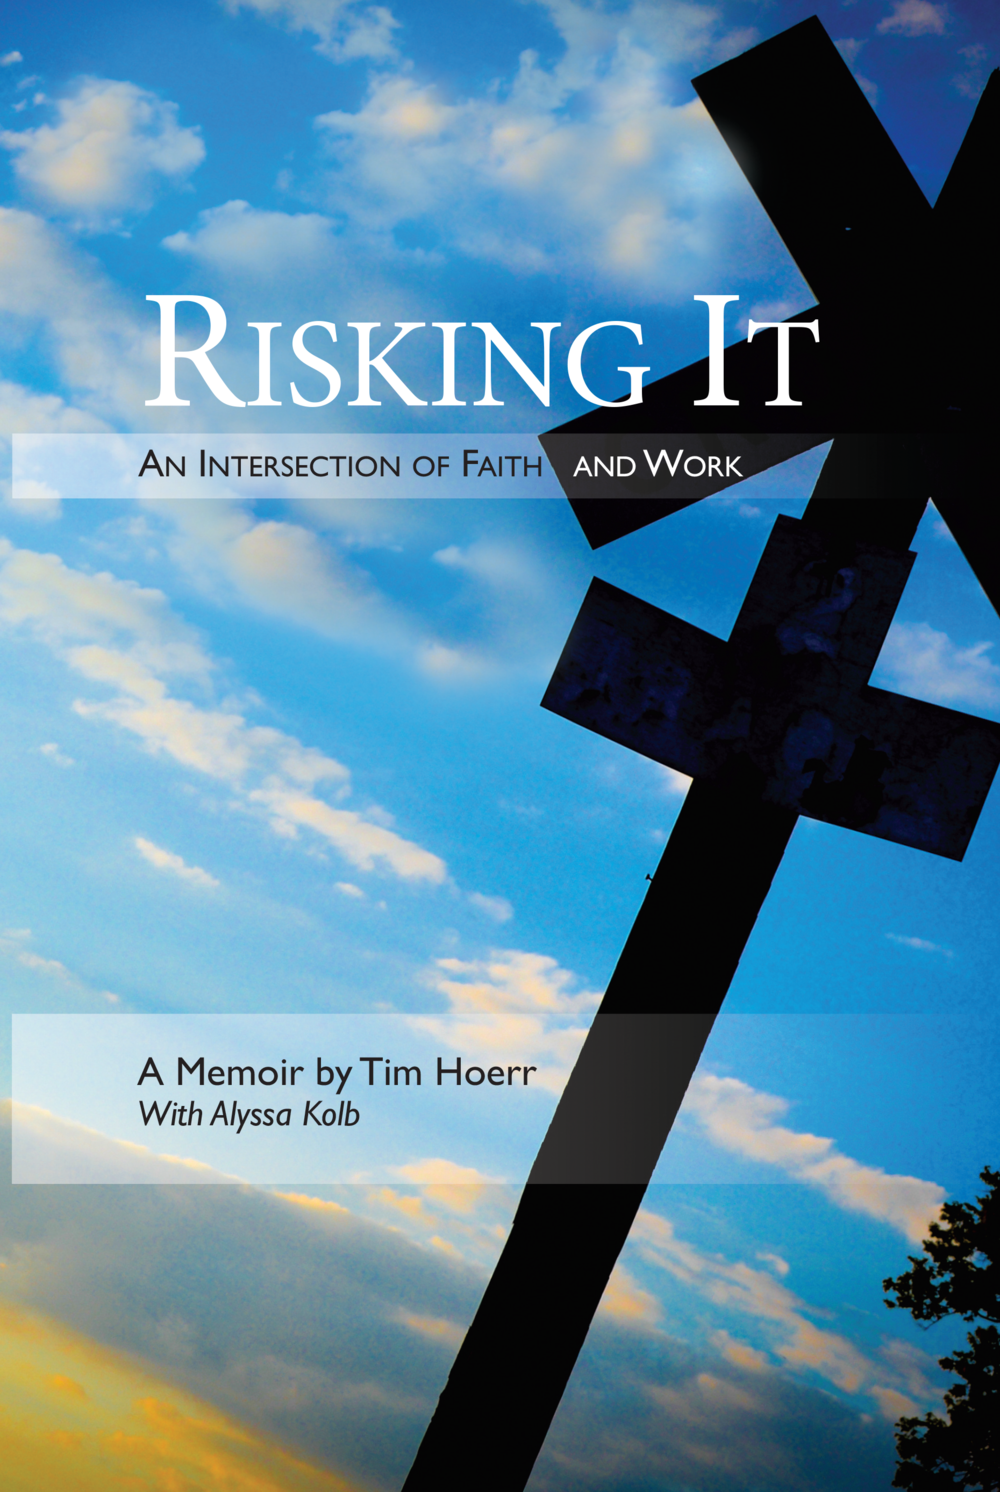 tim-hoerr-risking-it-book-cover